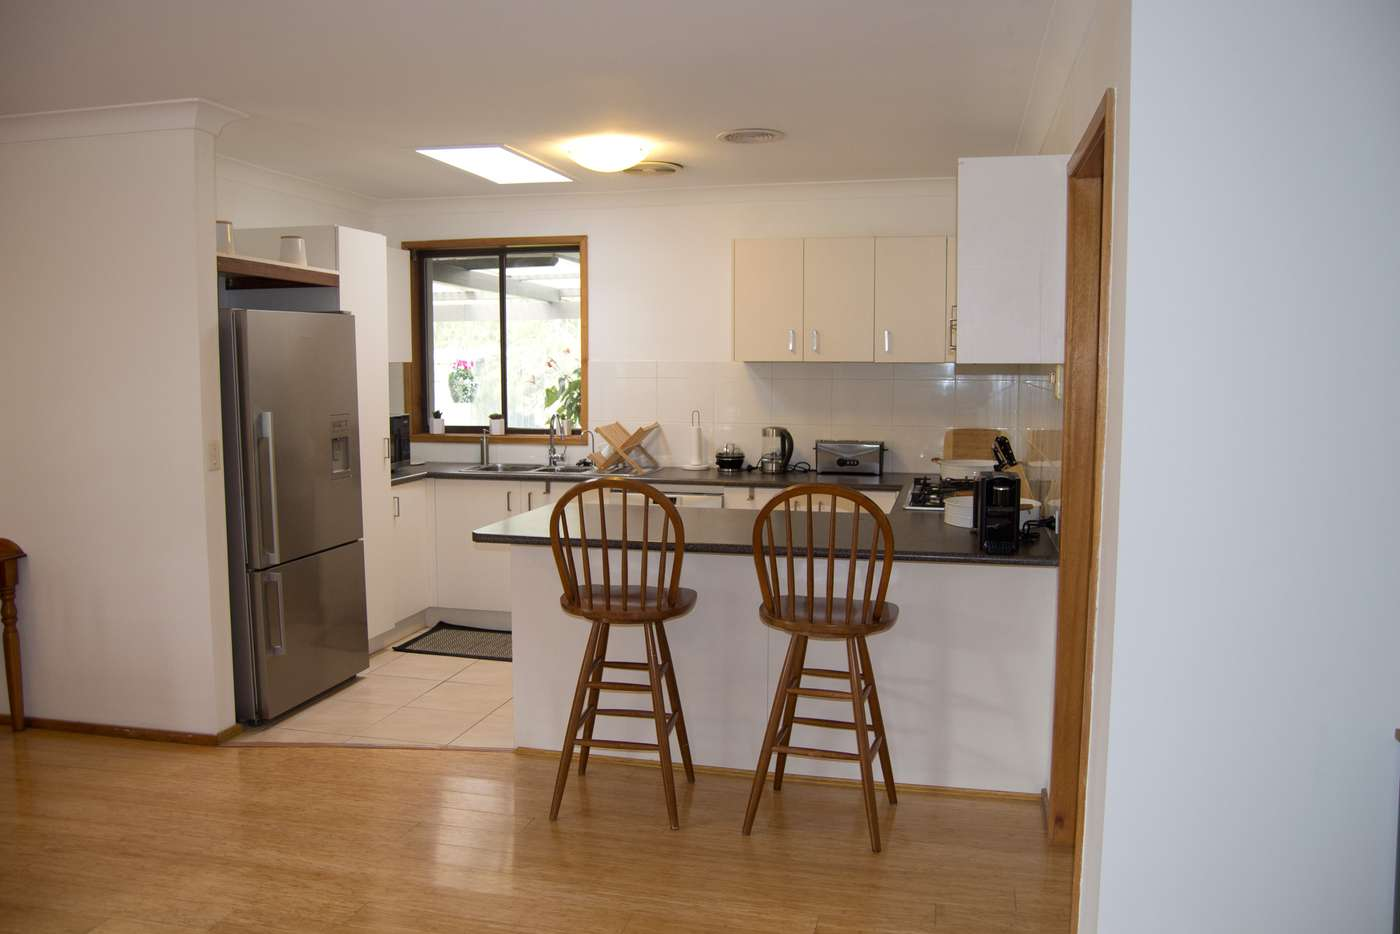 Seventh view of Homely house listing, 7 St James Close, Burradoo NSW 2576